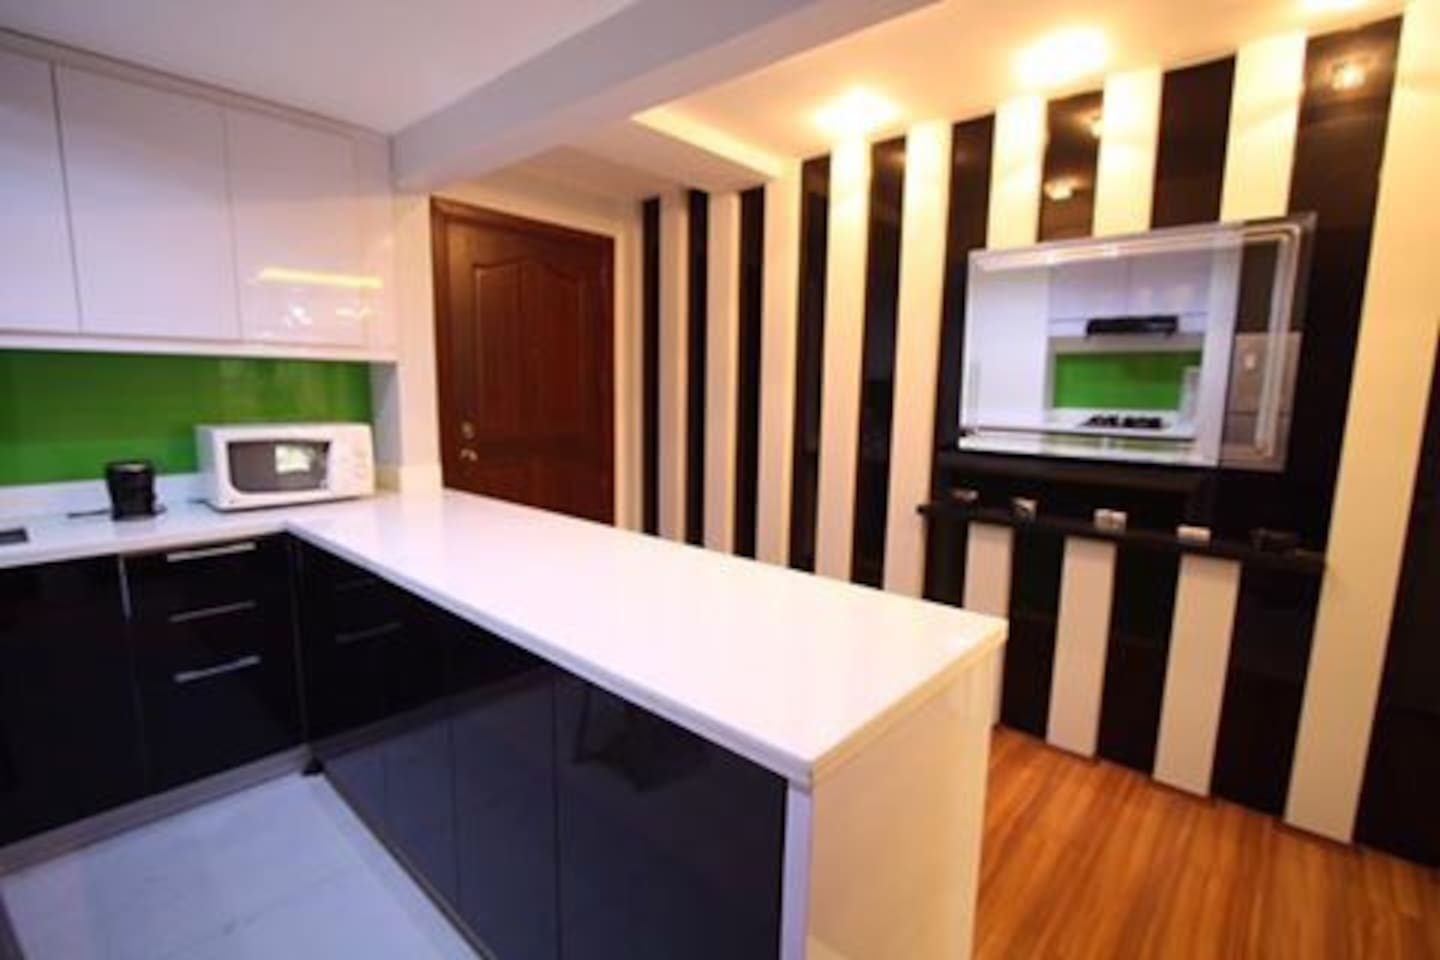 Wooden crib for sale quezon city - Luxe Modern Cozy Glass 1br Condo Condominiums For Rent In Quezon City Ncr Philippines